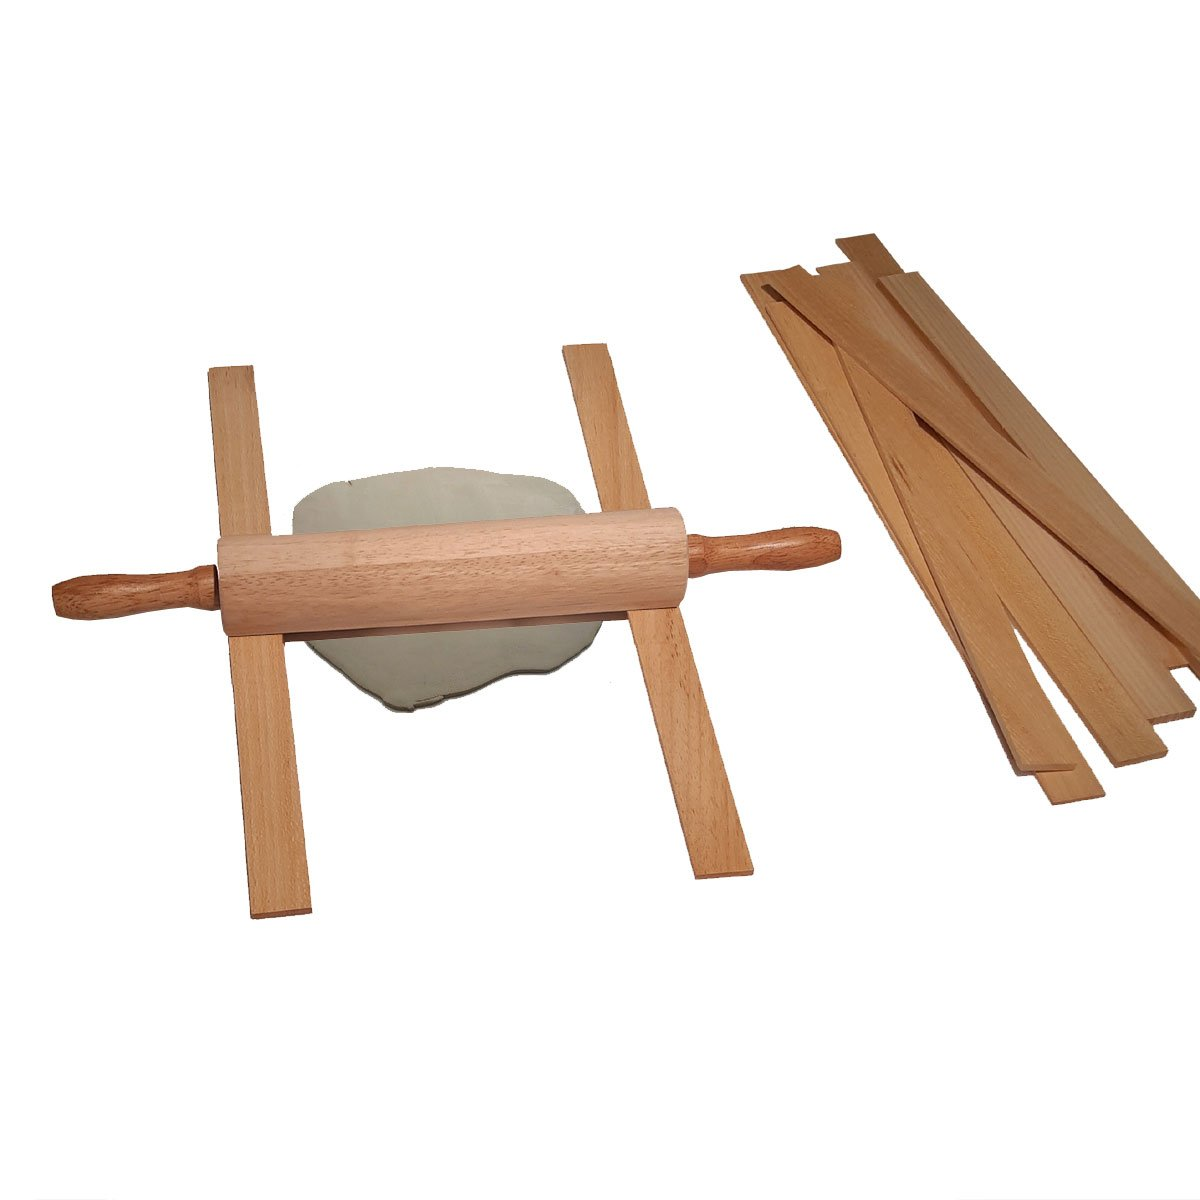 Thickness Strips, Set of 3 Bamboo